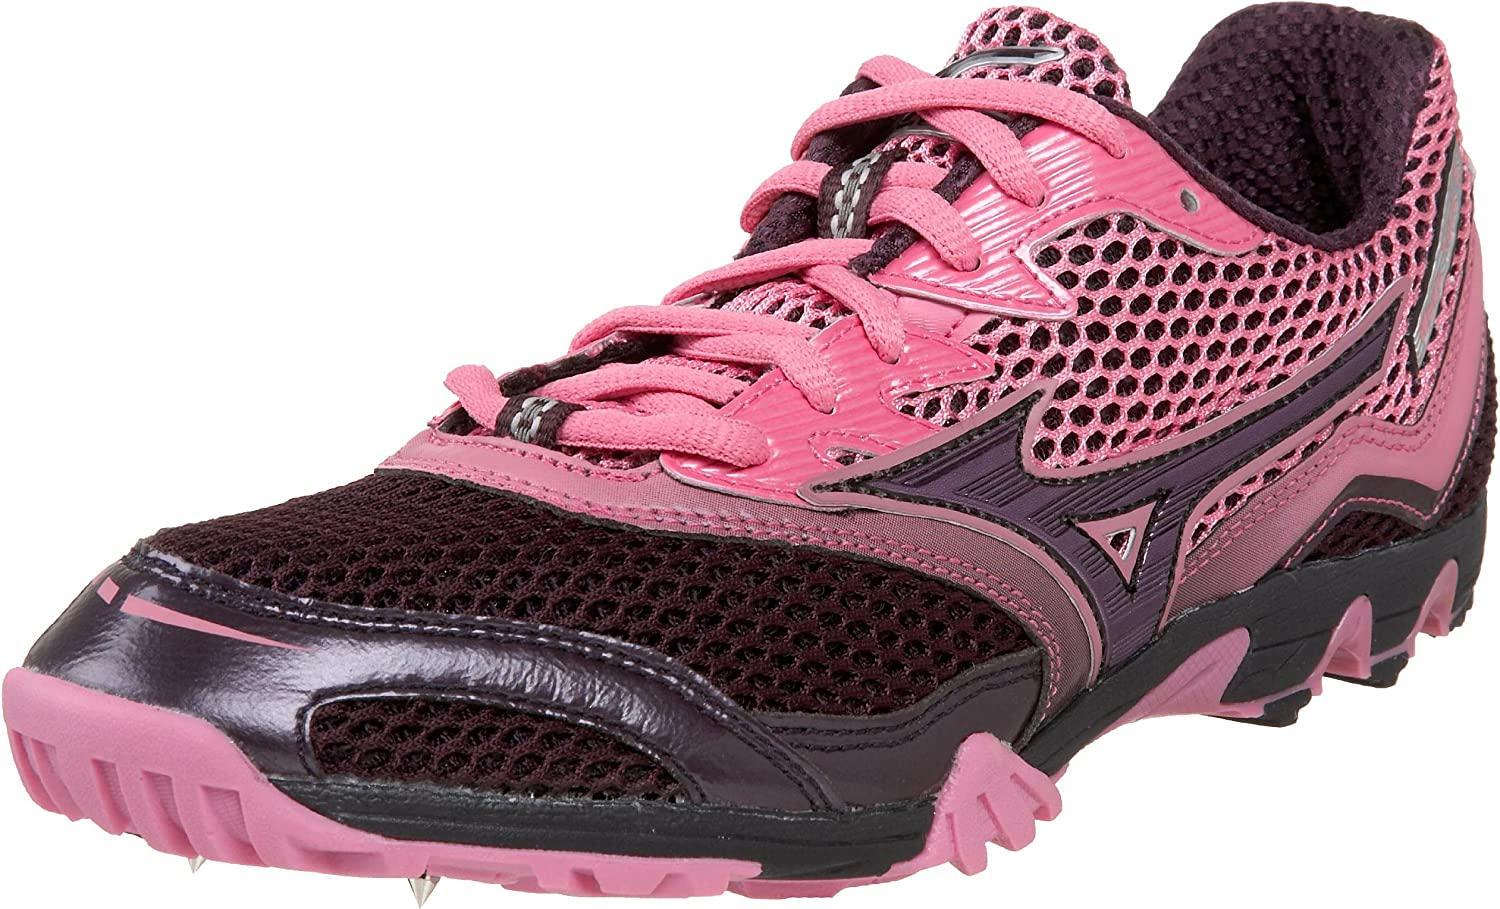 Mizuno Women's Quantity limited Wave Kaze 5 Cross Indoor Country Colorado Springs Mall And Shoe